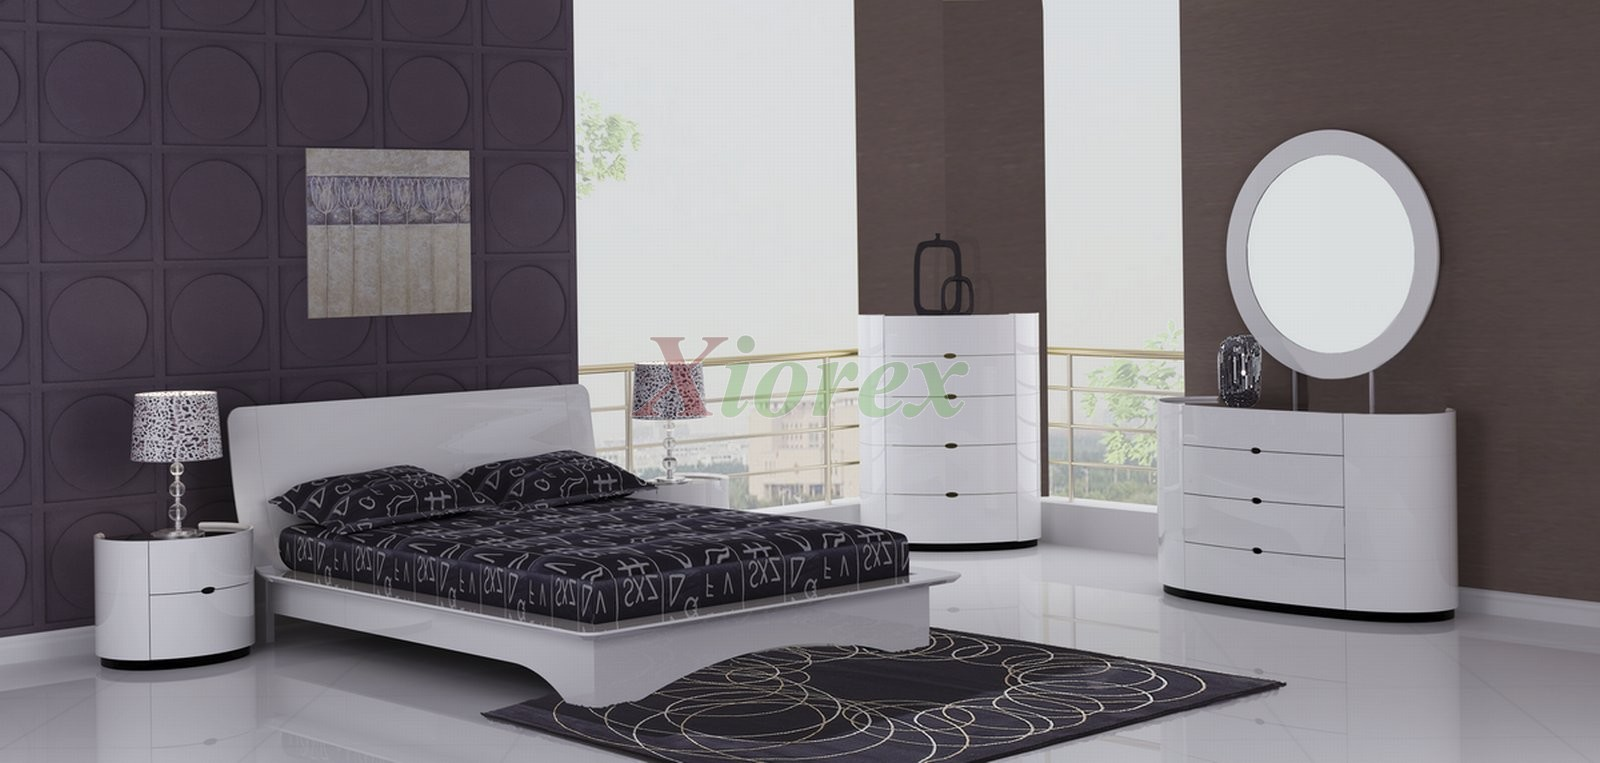 Eri all white modern bedroom furniture sets canada xiorex for Bedroom dresser sets